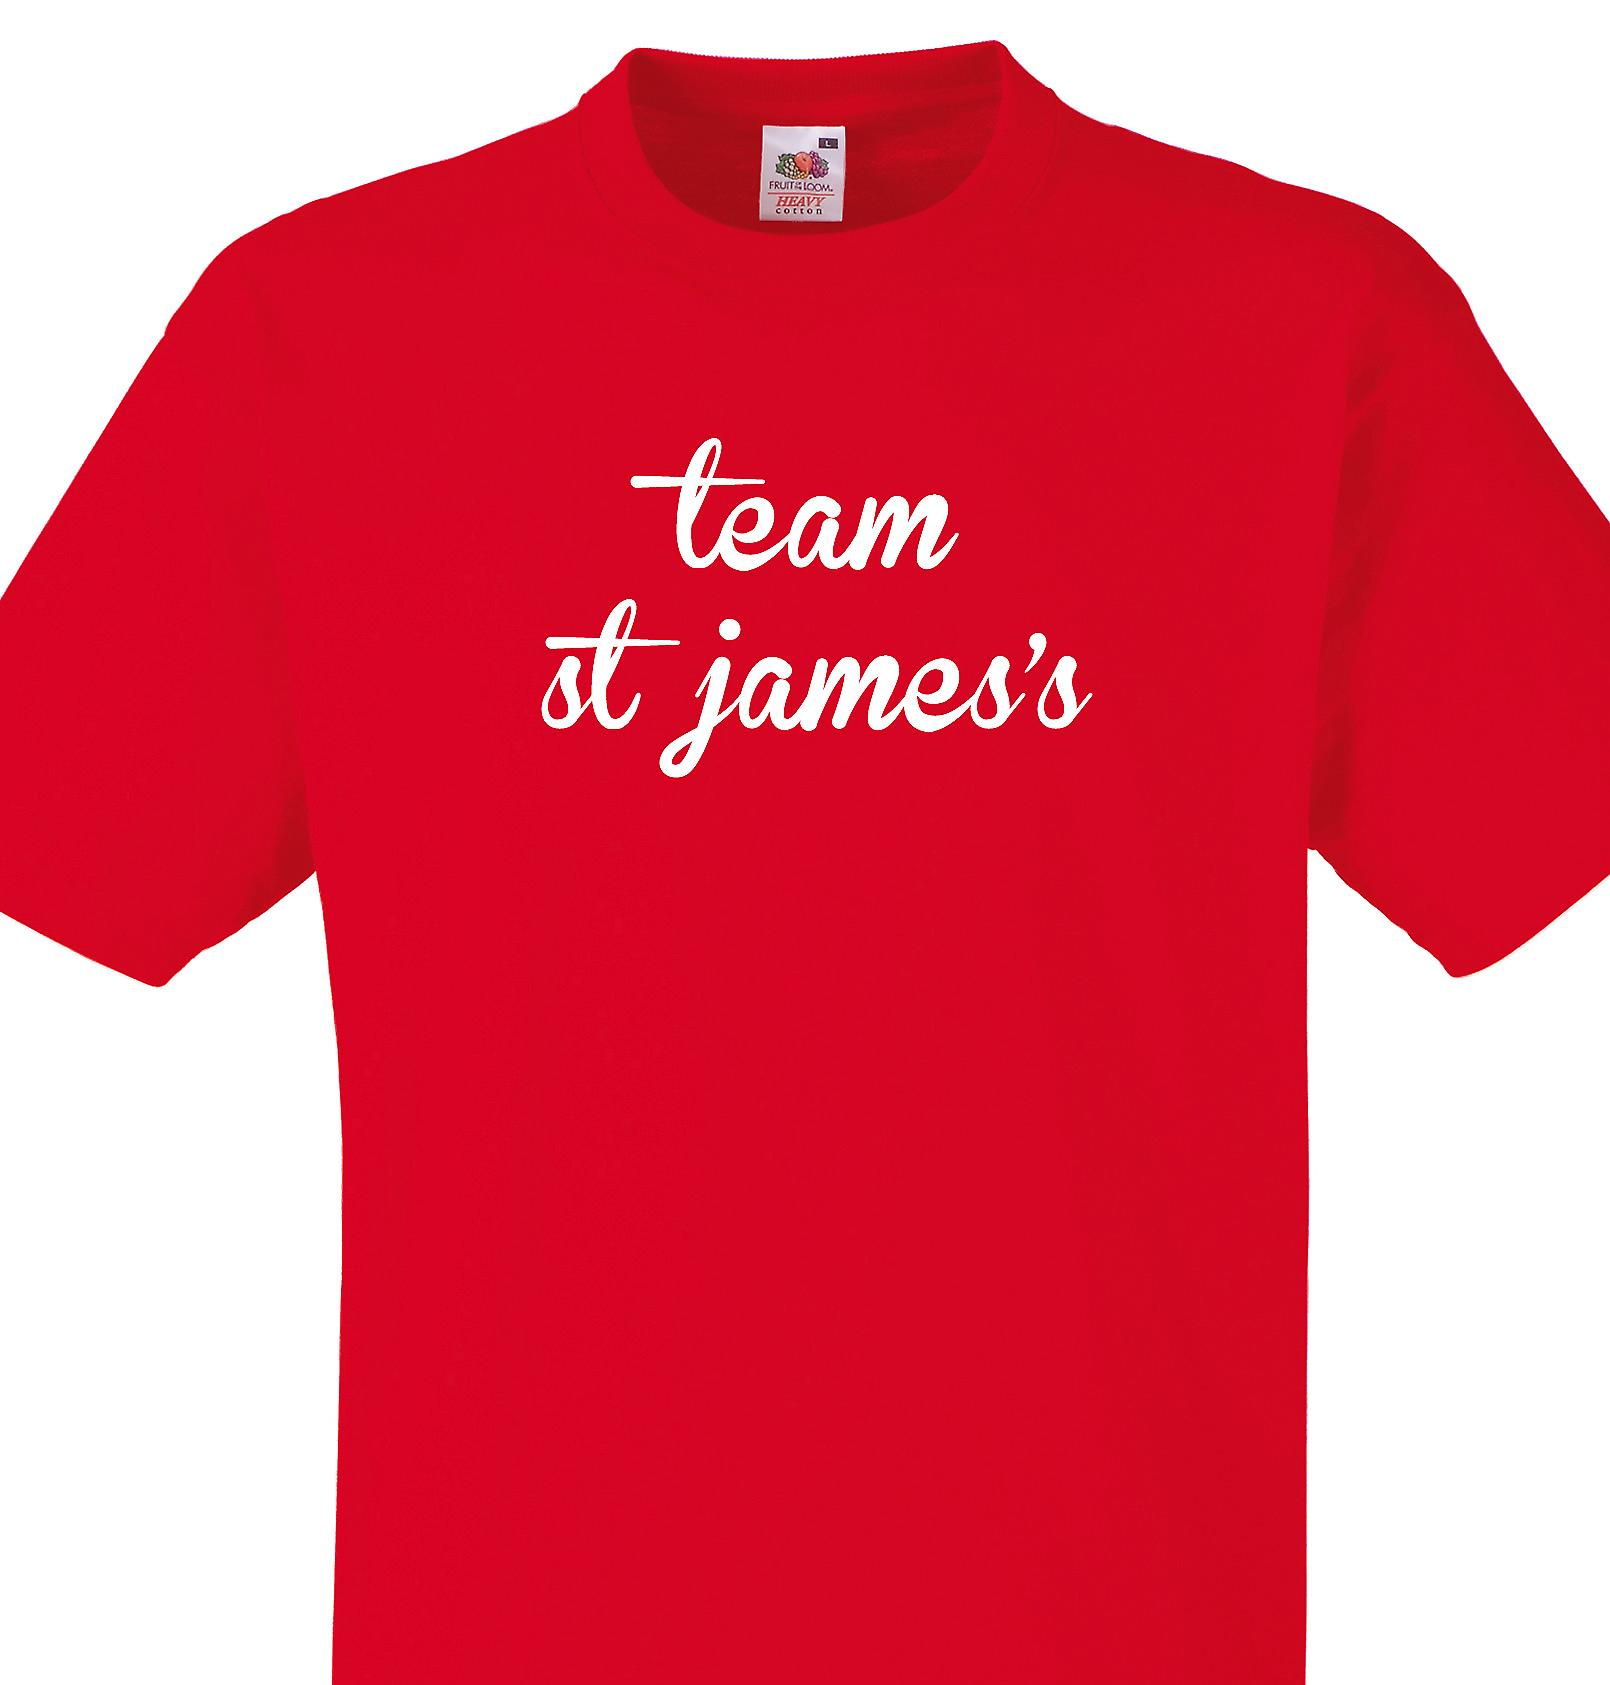 Team St james's Red T shirt